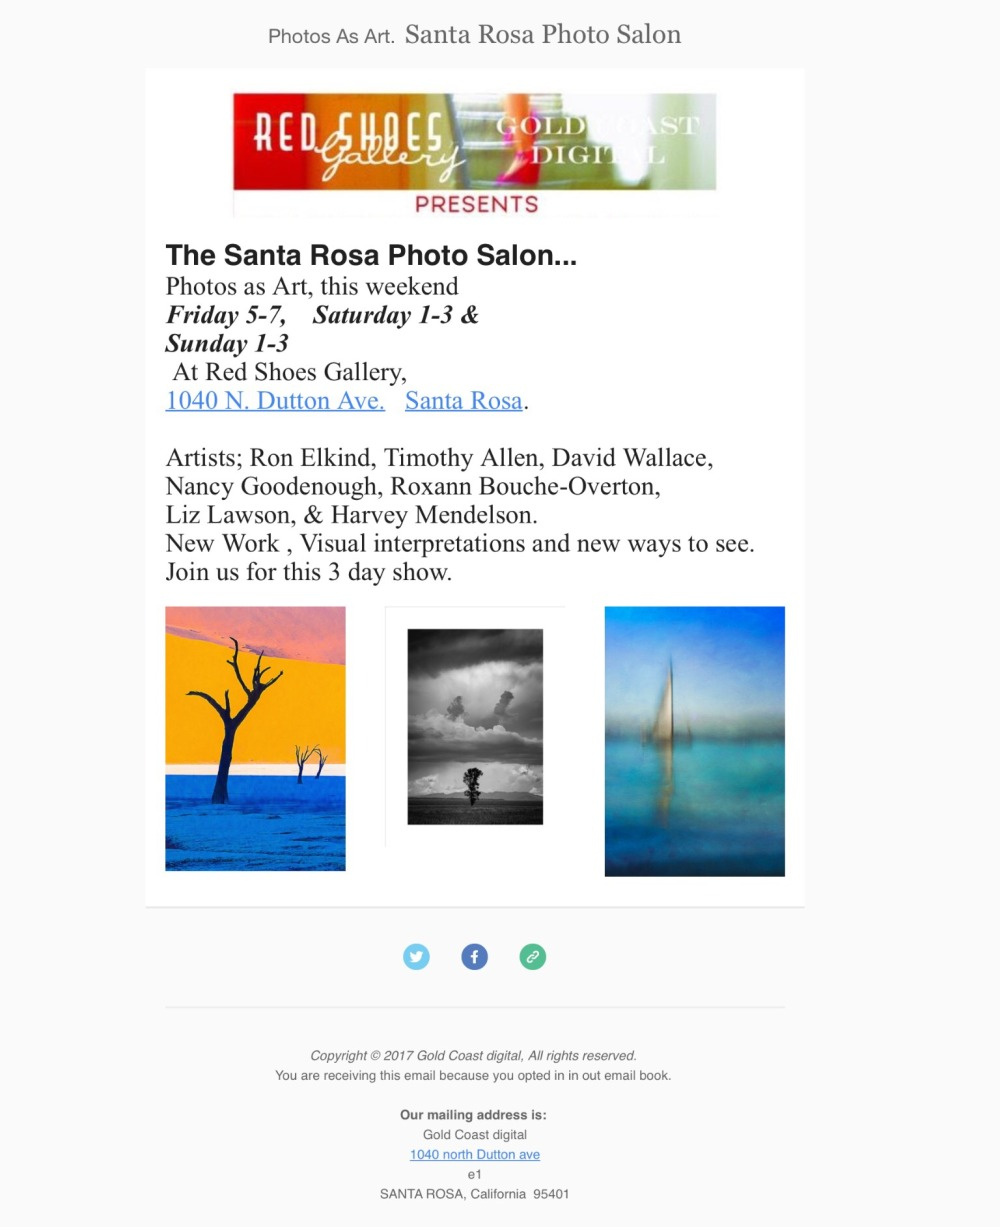 I'm in this group exhibition that opens Friday December 1 from 5-7 pm at the Red Shoes Gallery in Santa Rosa, CA. You can also see the exhibition on Saturday and Sunday from 1 - 3 pm. I have 6 photographs from my Eastern Sierras series with an emphasis on fall colors. They are all on metal and under $99 dollars each. I hope to see you there.